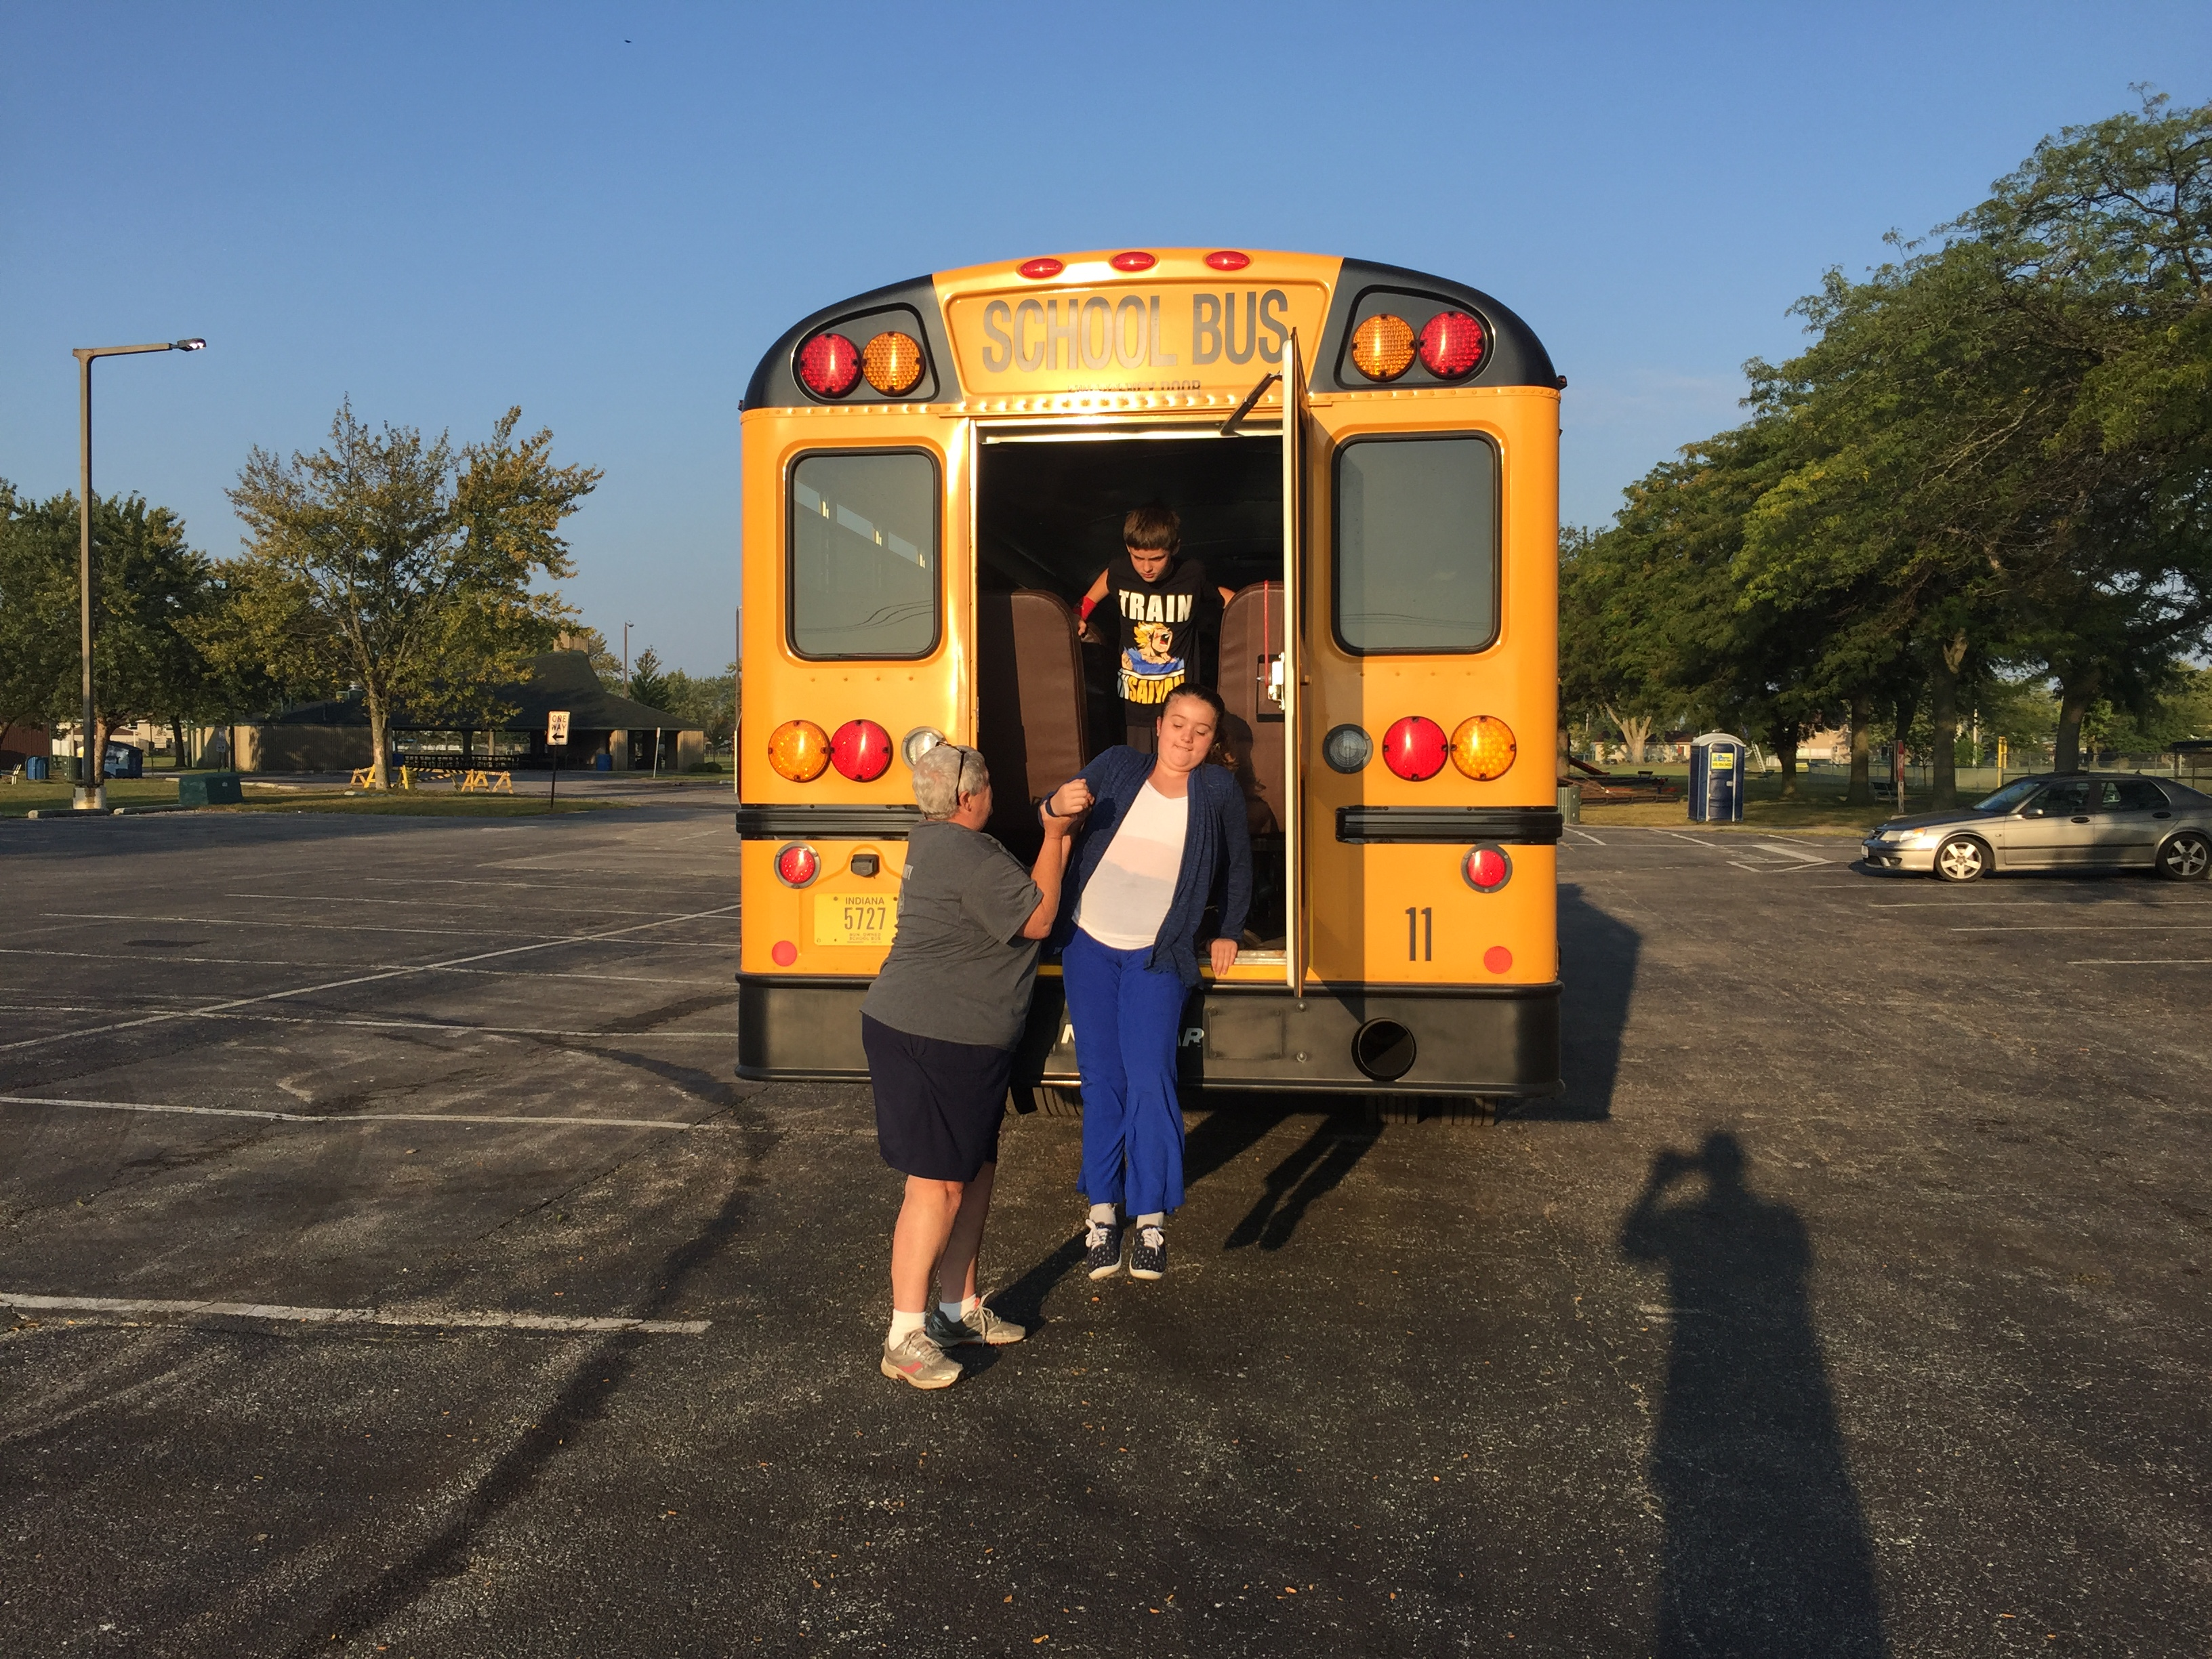 Successful bus evacuation, great job Protsman students from Bus 11!